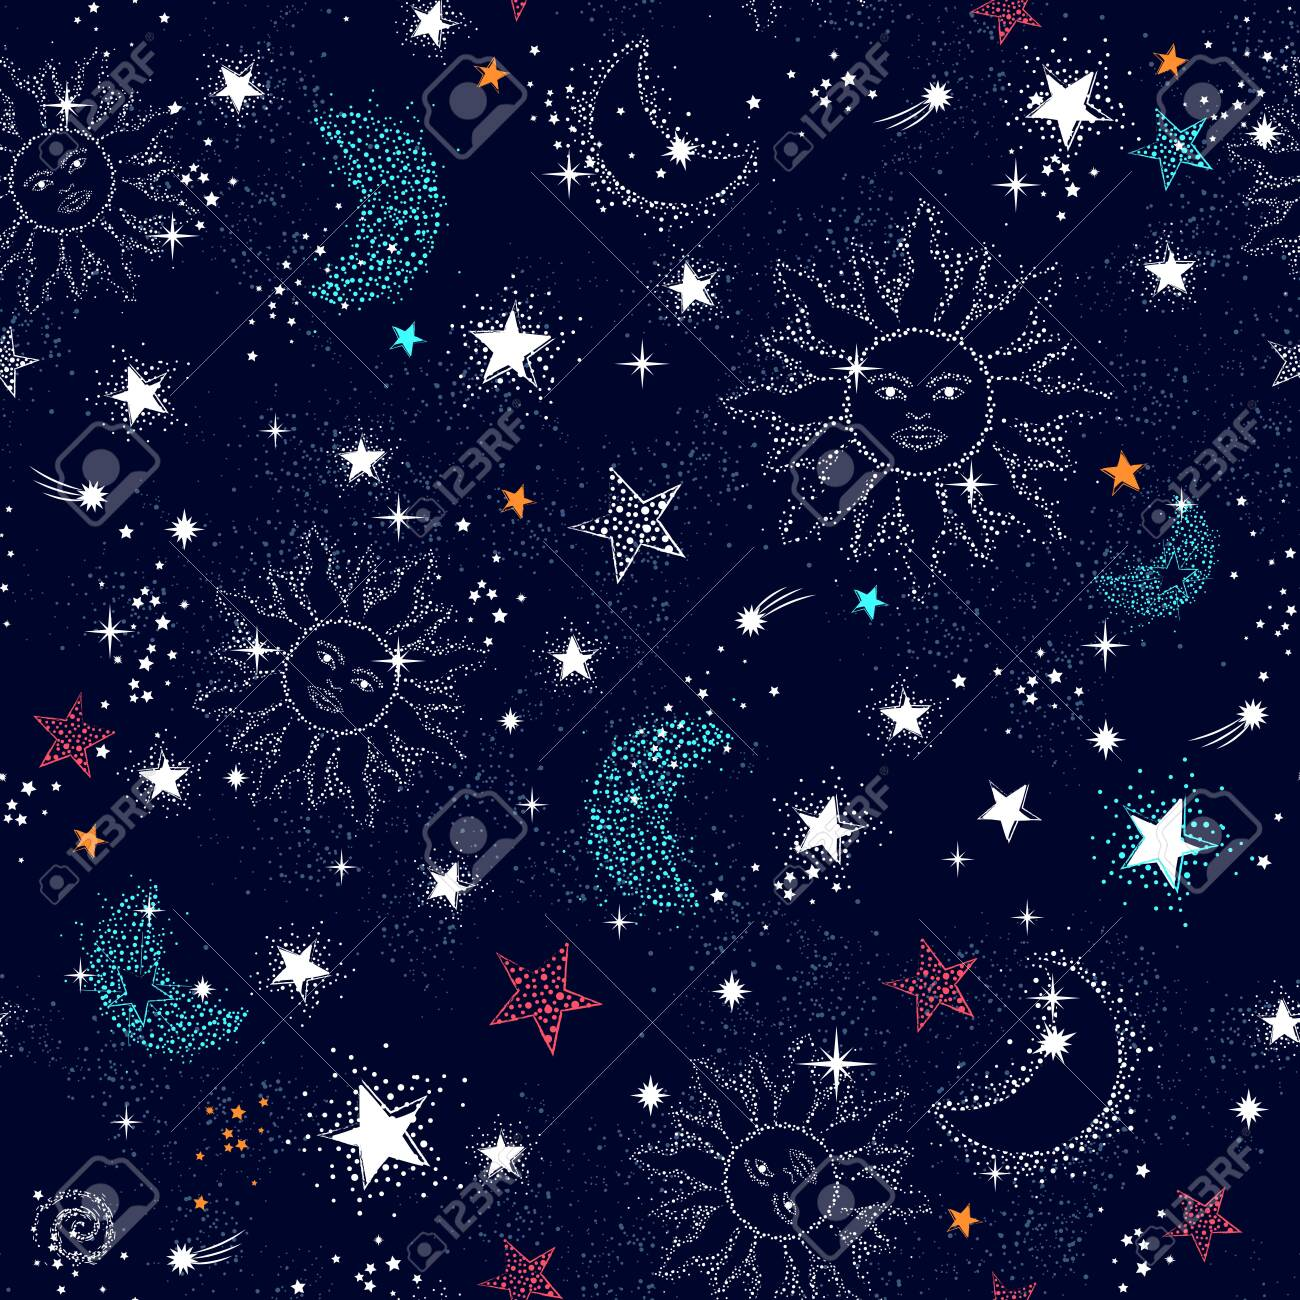 Space Galaxy constellation seamless pattern print could be used for textile, zodiac star yoga mat, phone case - 131078289